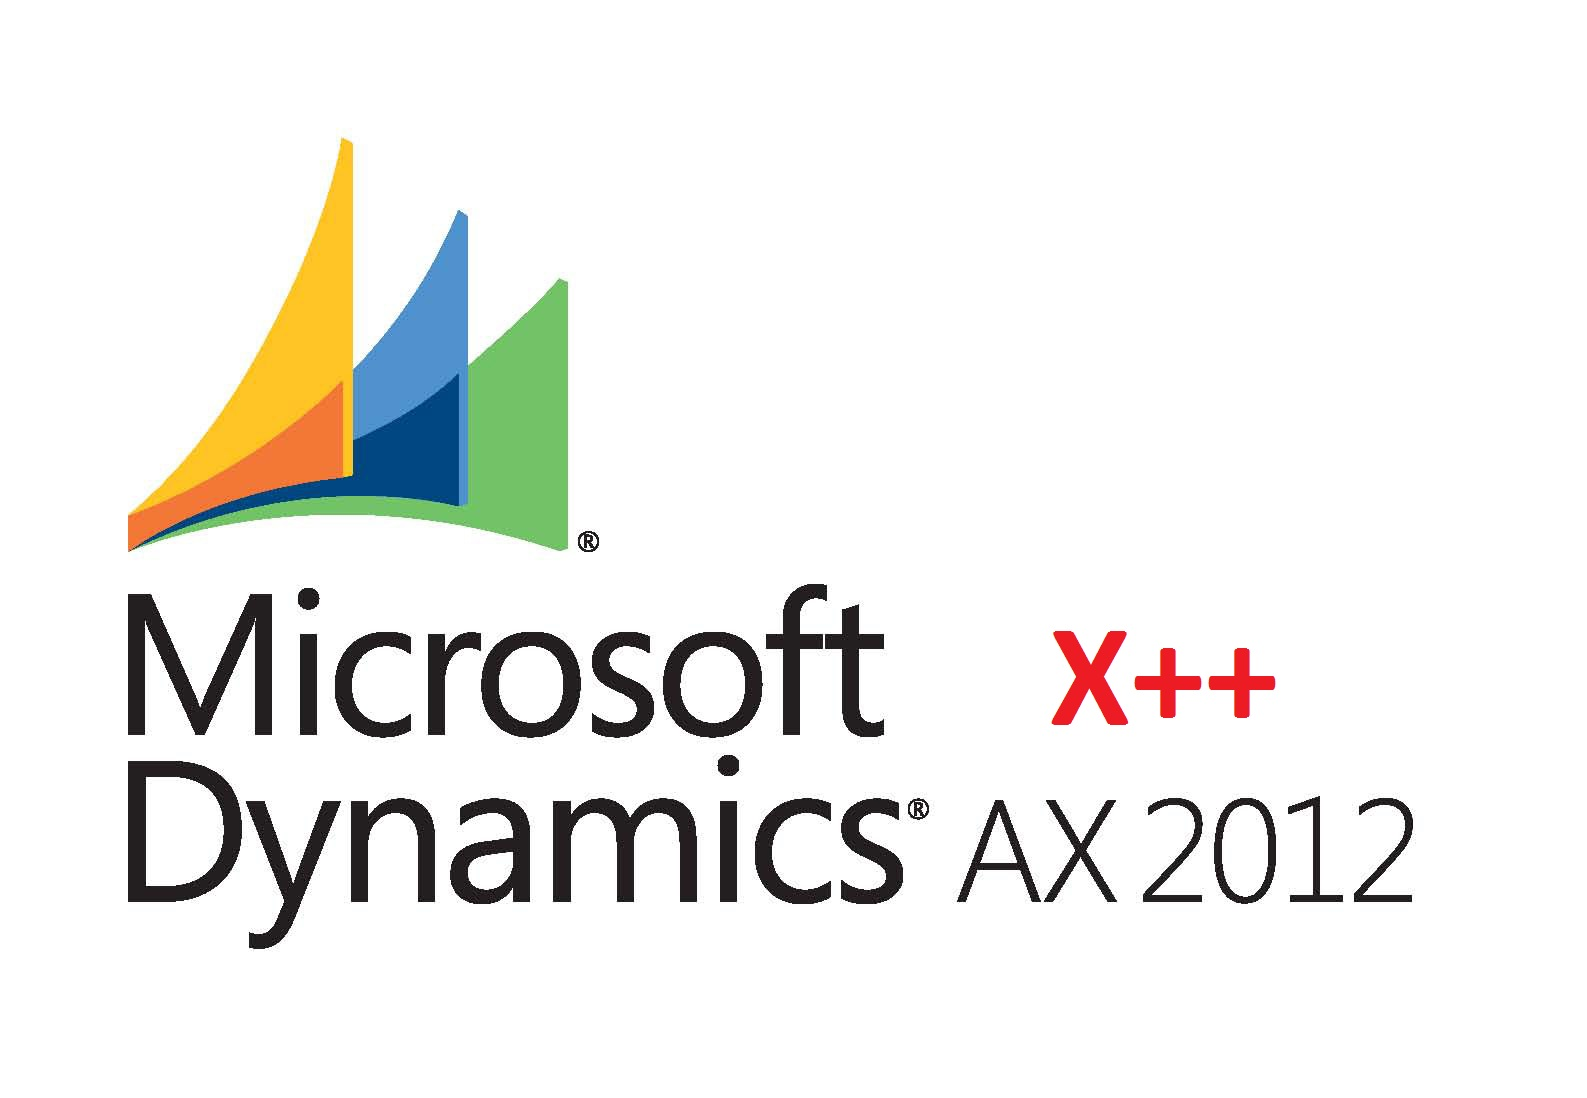 HOW TO CREATE PURCHASE ORDER IN MICROSOFT DYNAMICS AX 2012